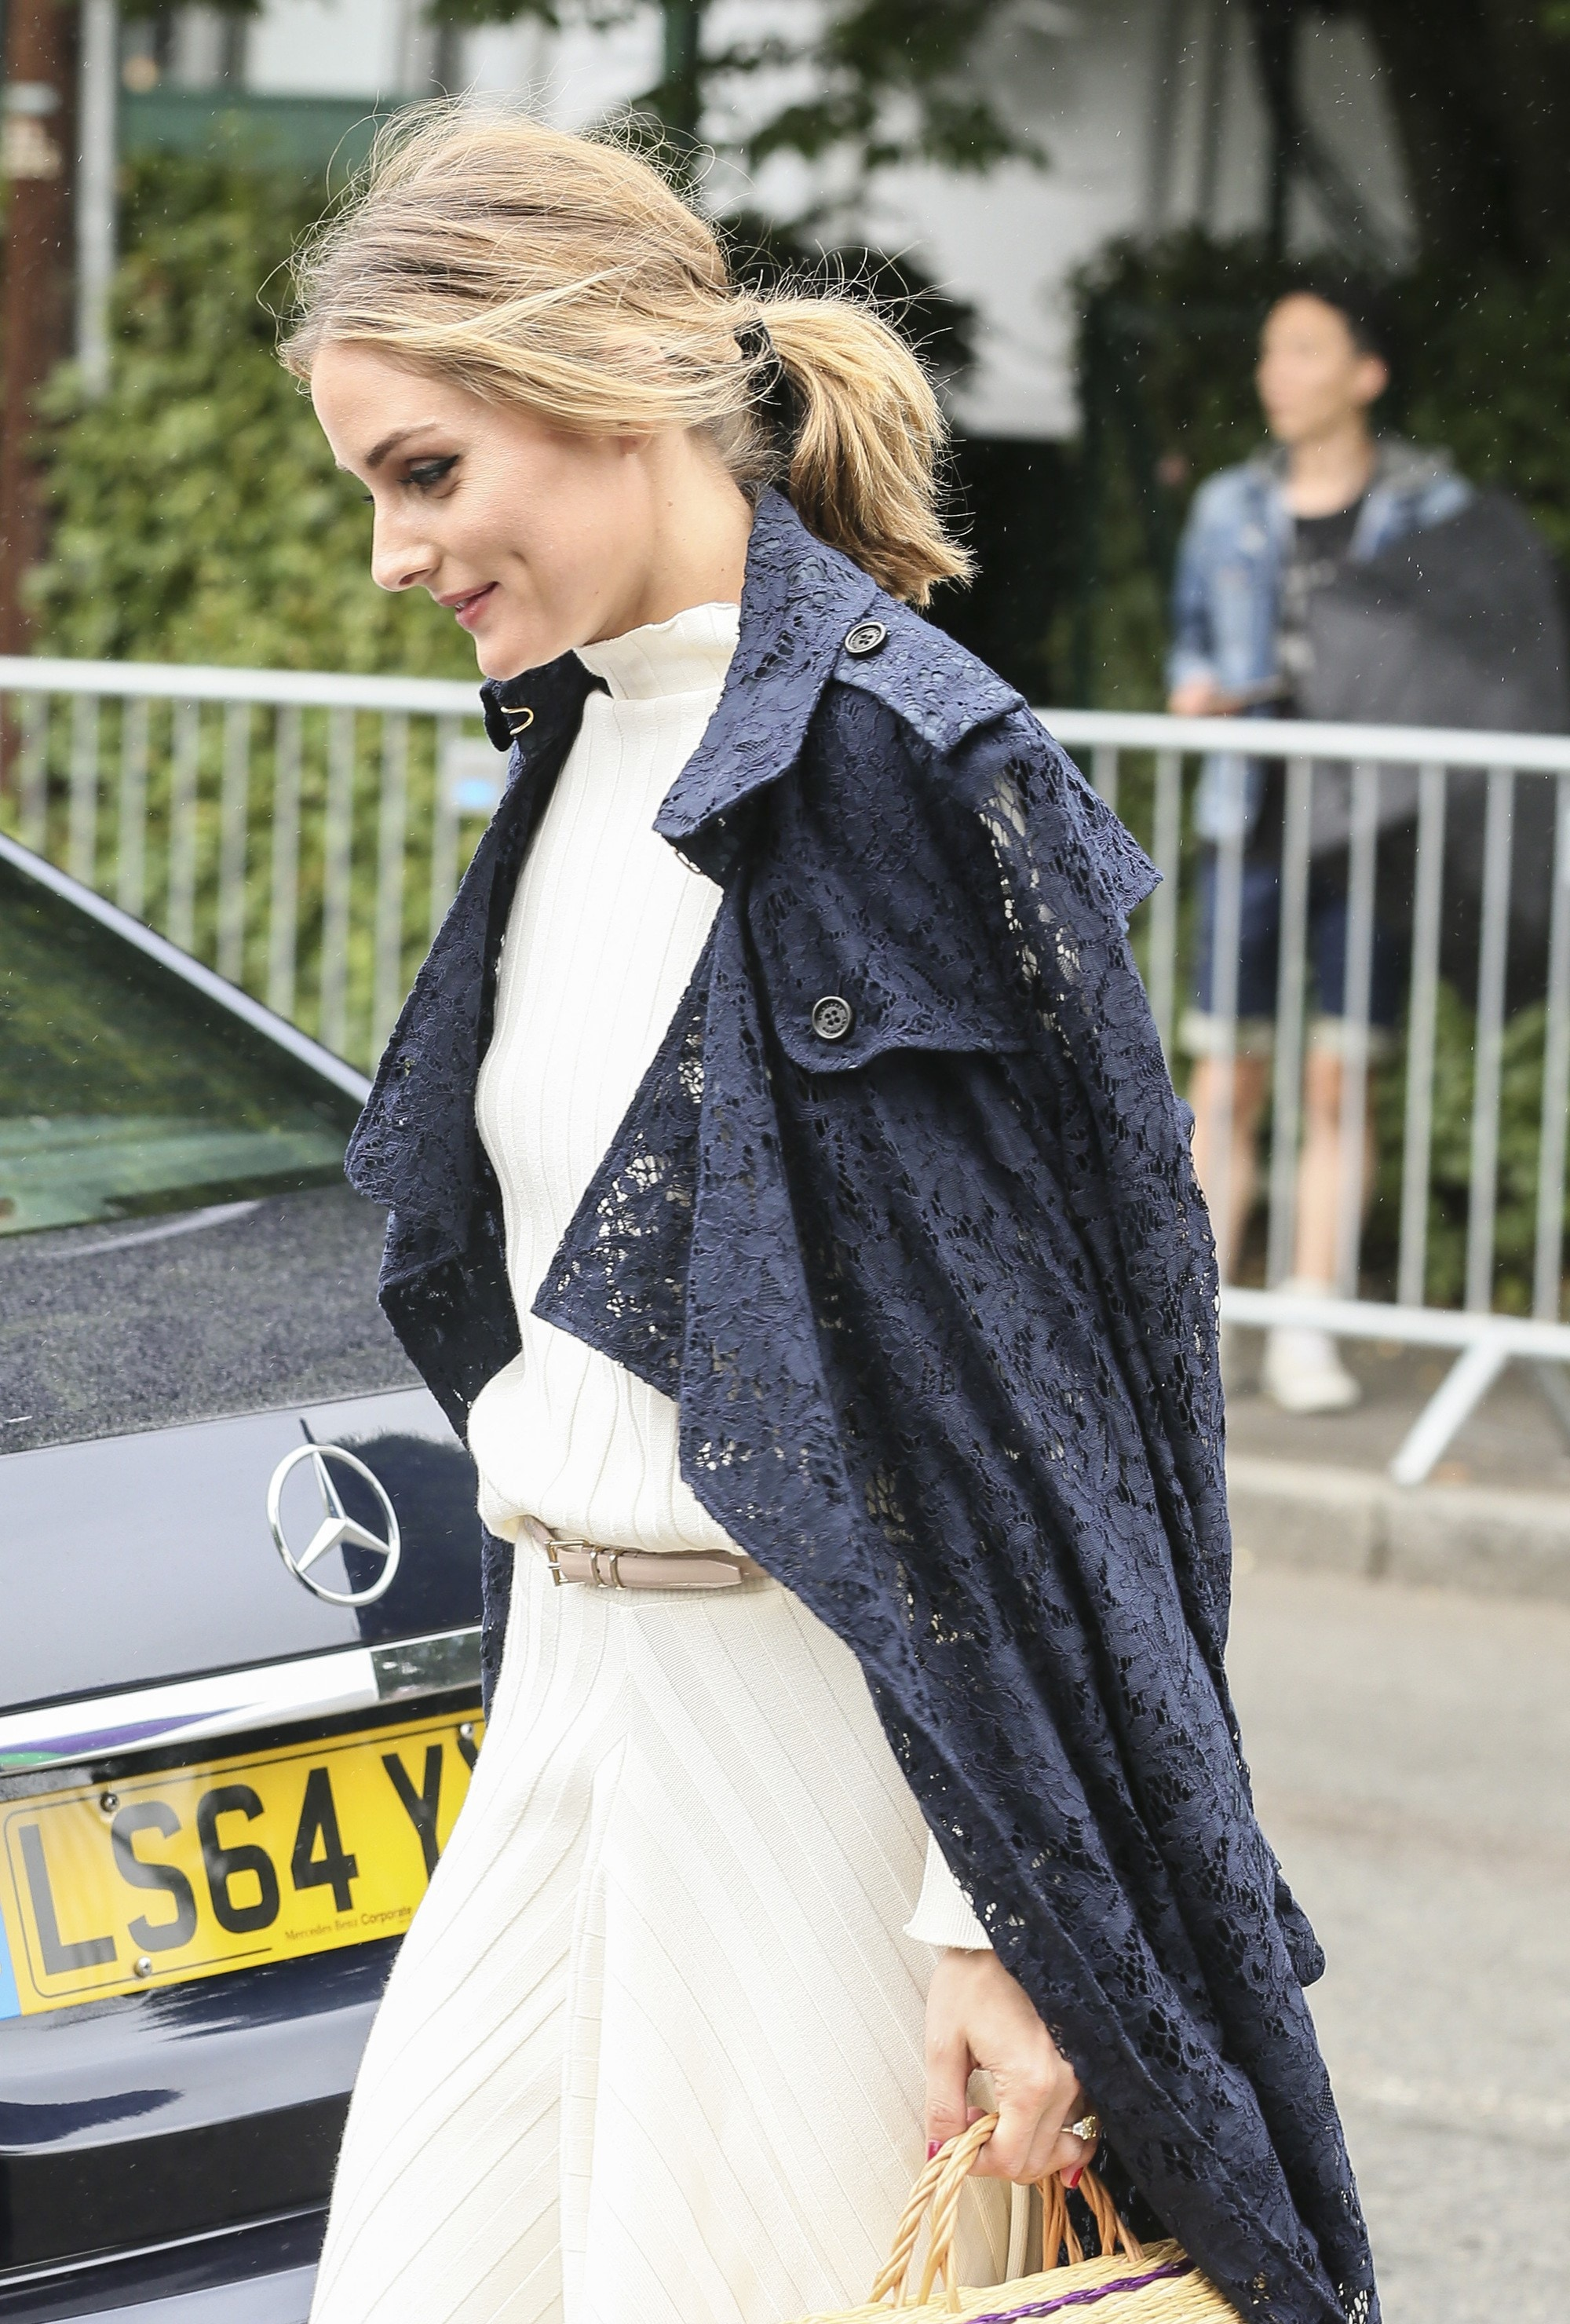 american fashionista olivia palermo with her dark blonde hair in a ponytail tied with a black ribbon